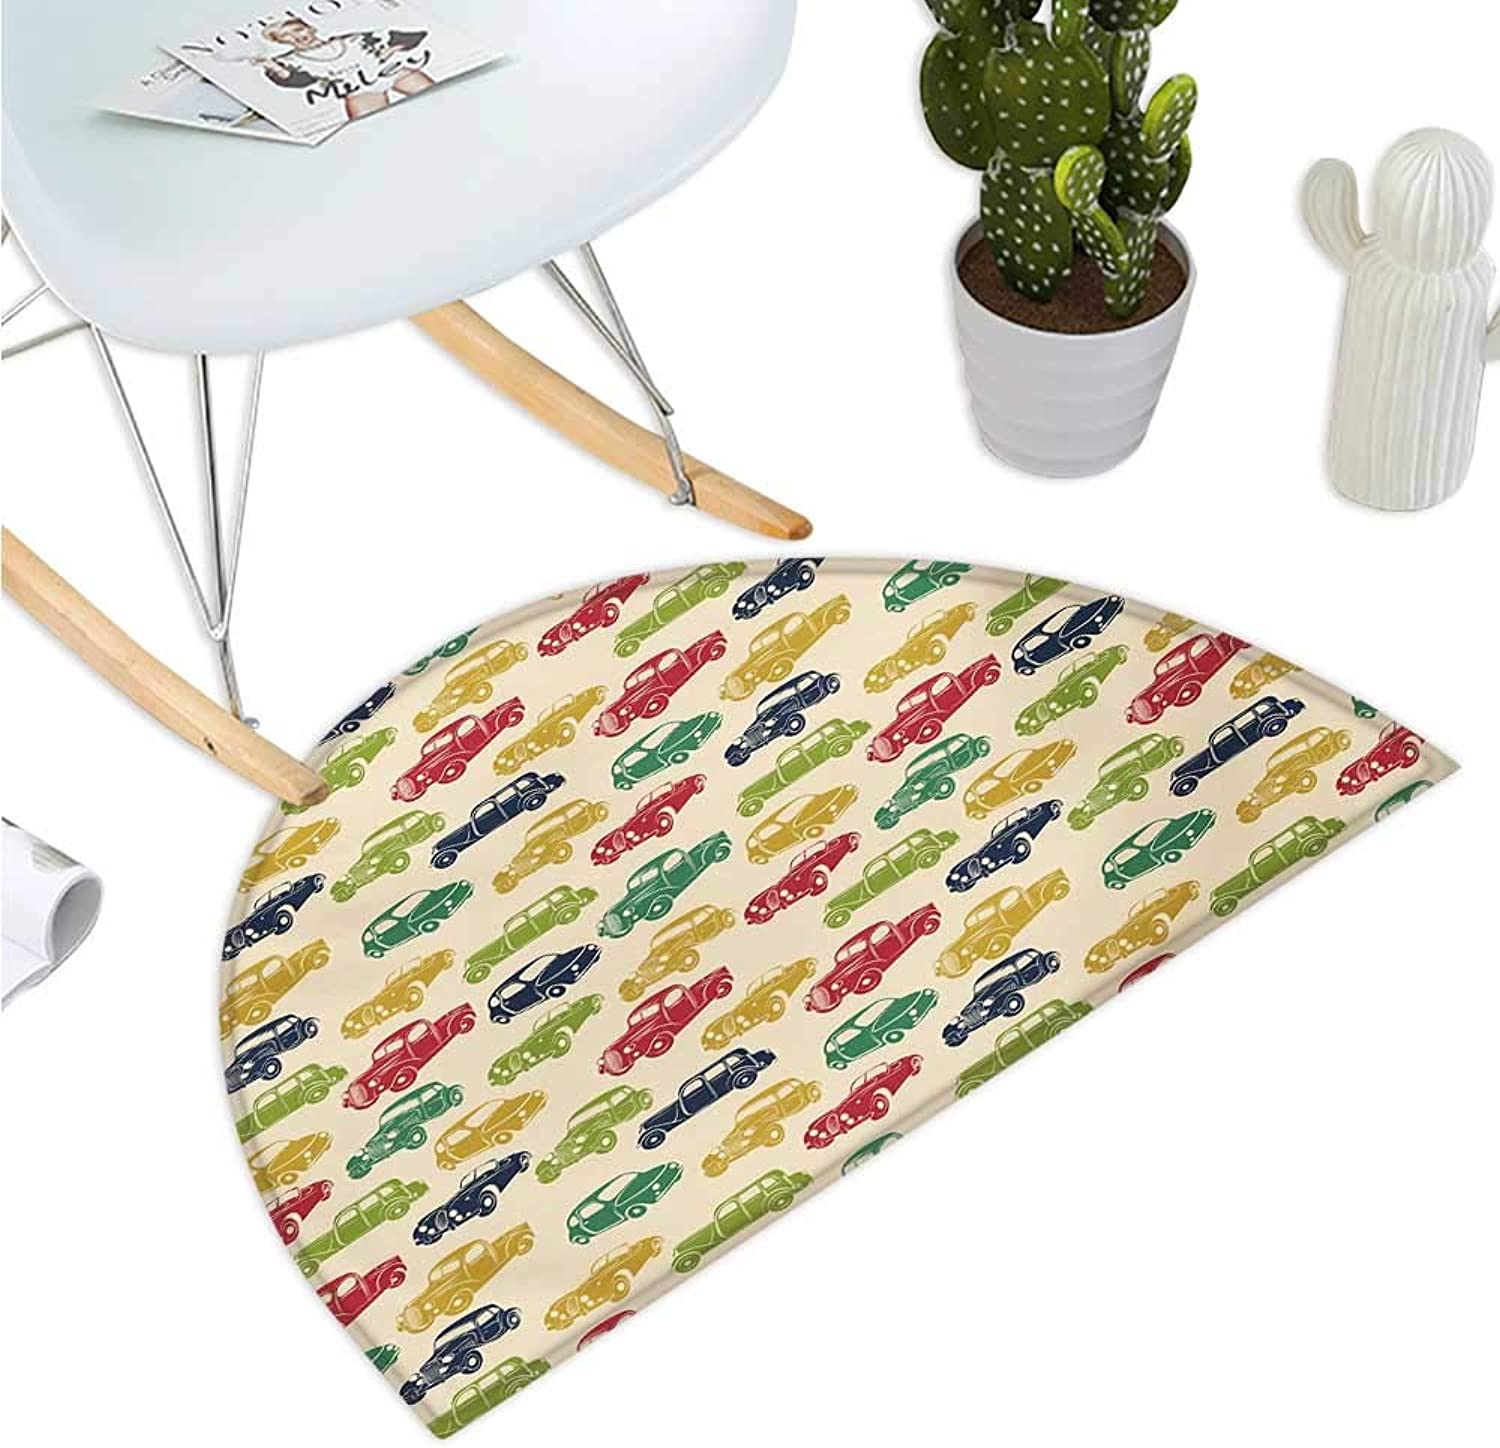 Cars Semicircular Cushion Various Vehicles with Curved Edges Vintage Car Designs from Fifties Bathroom Mat H 35.4  xD 53.1  Dark bluee Red Fern Green